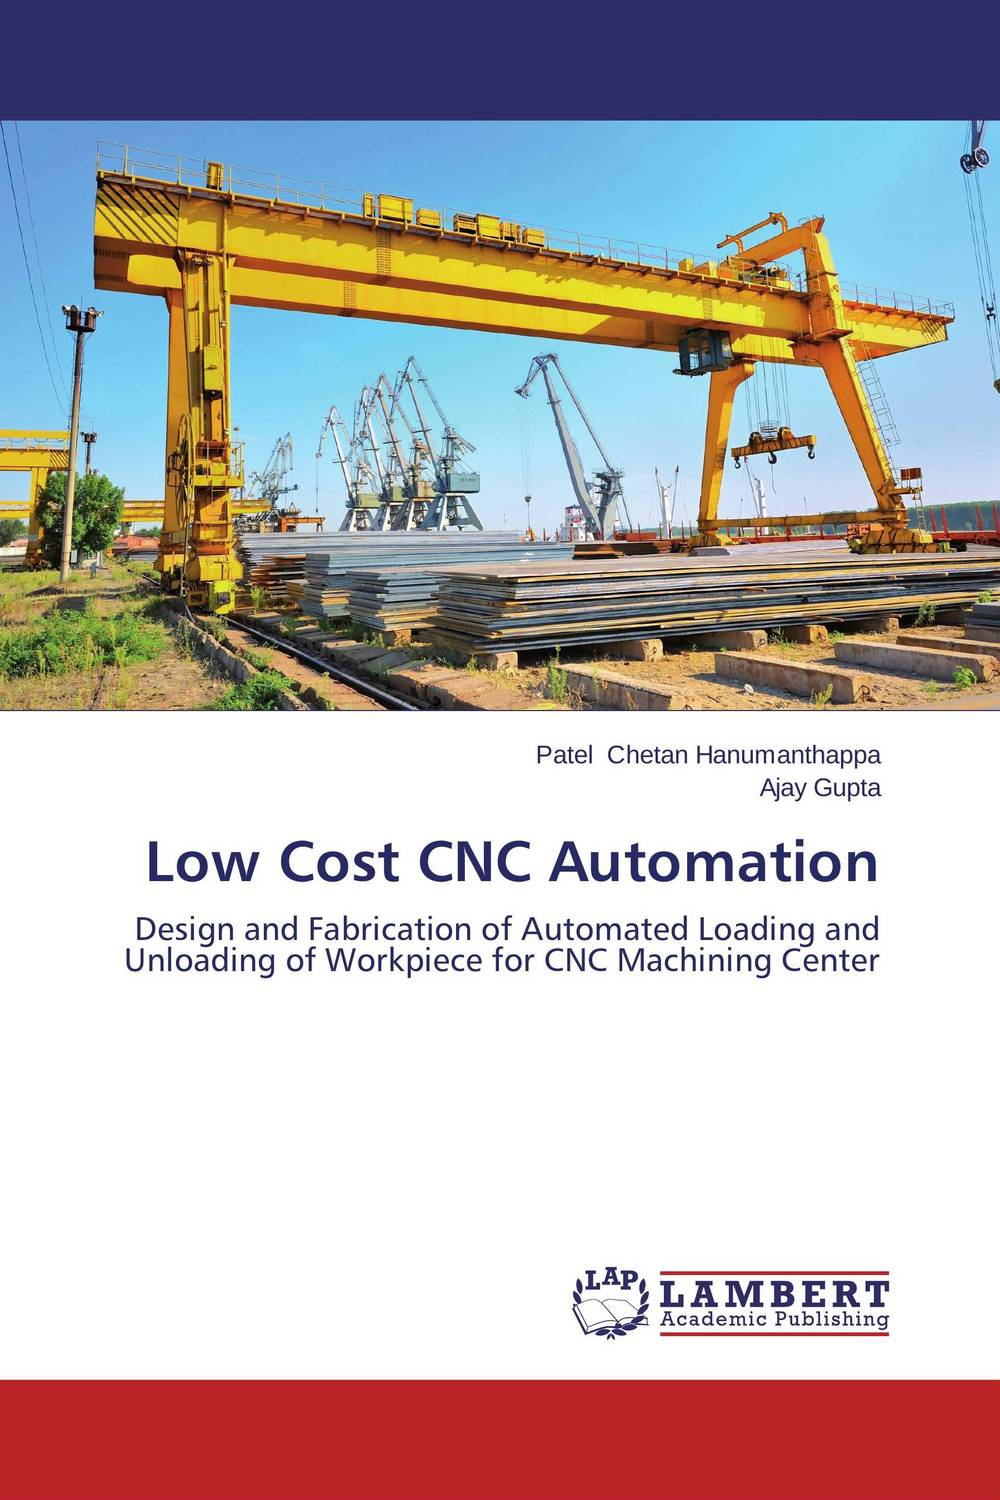 Low Cost CNC Automation coal handling and equipment selection